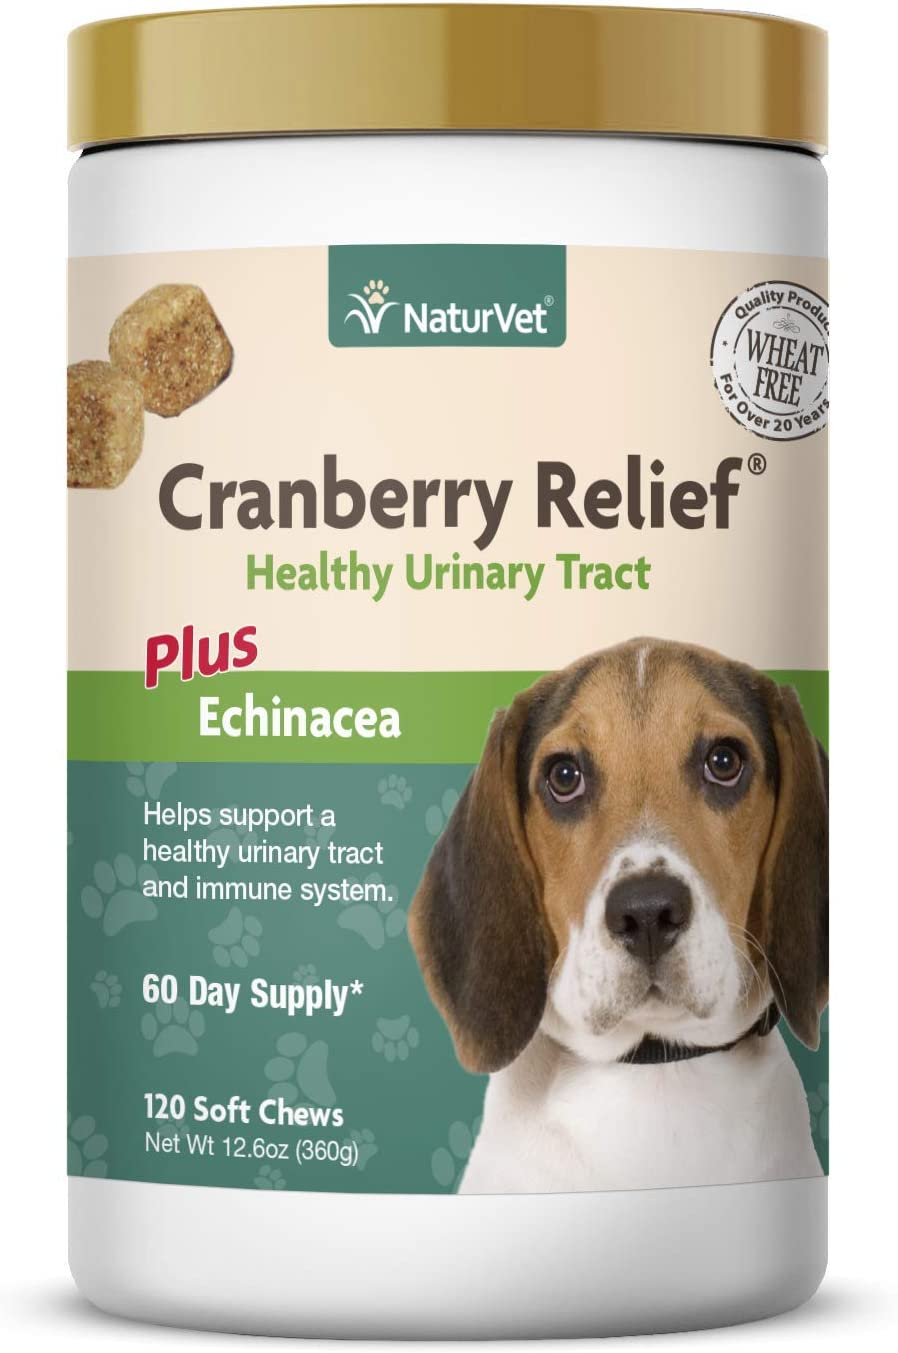 NaturVet Cranberry Relief Plus Echinacea Helps Support a Healthy Urinary Tract Immune System